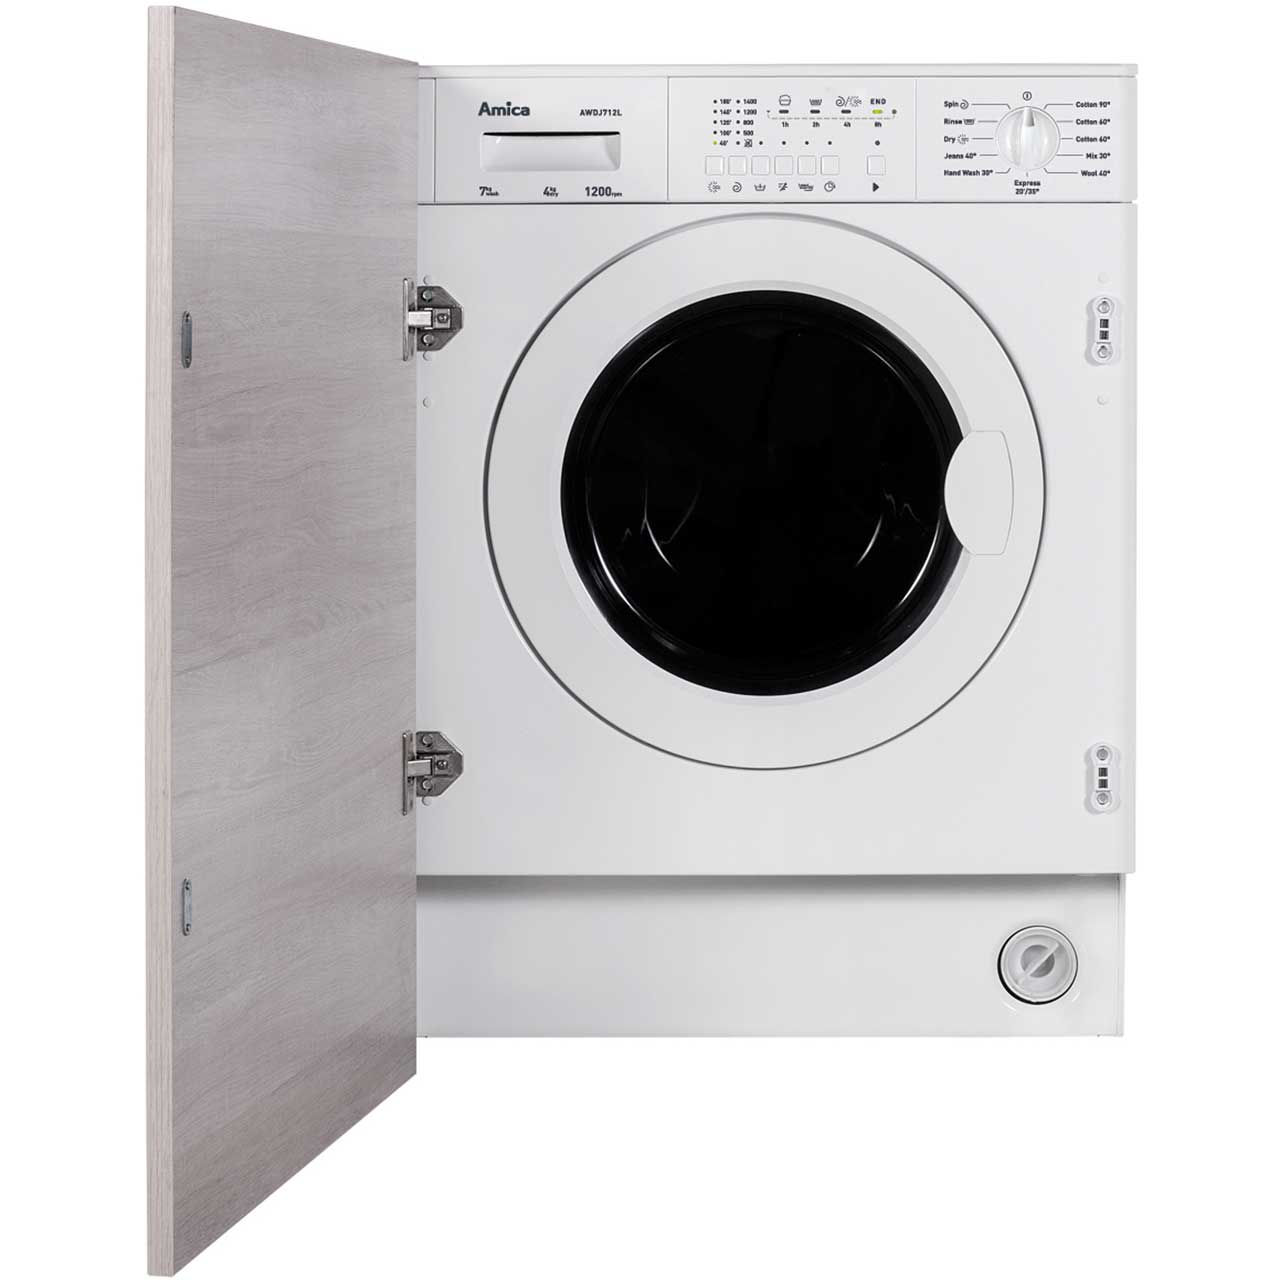 Amica AWDJ712L Integrated Washer Dryer in White